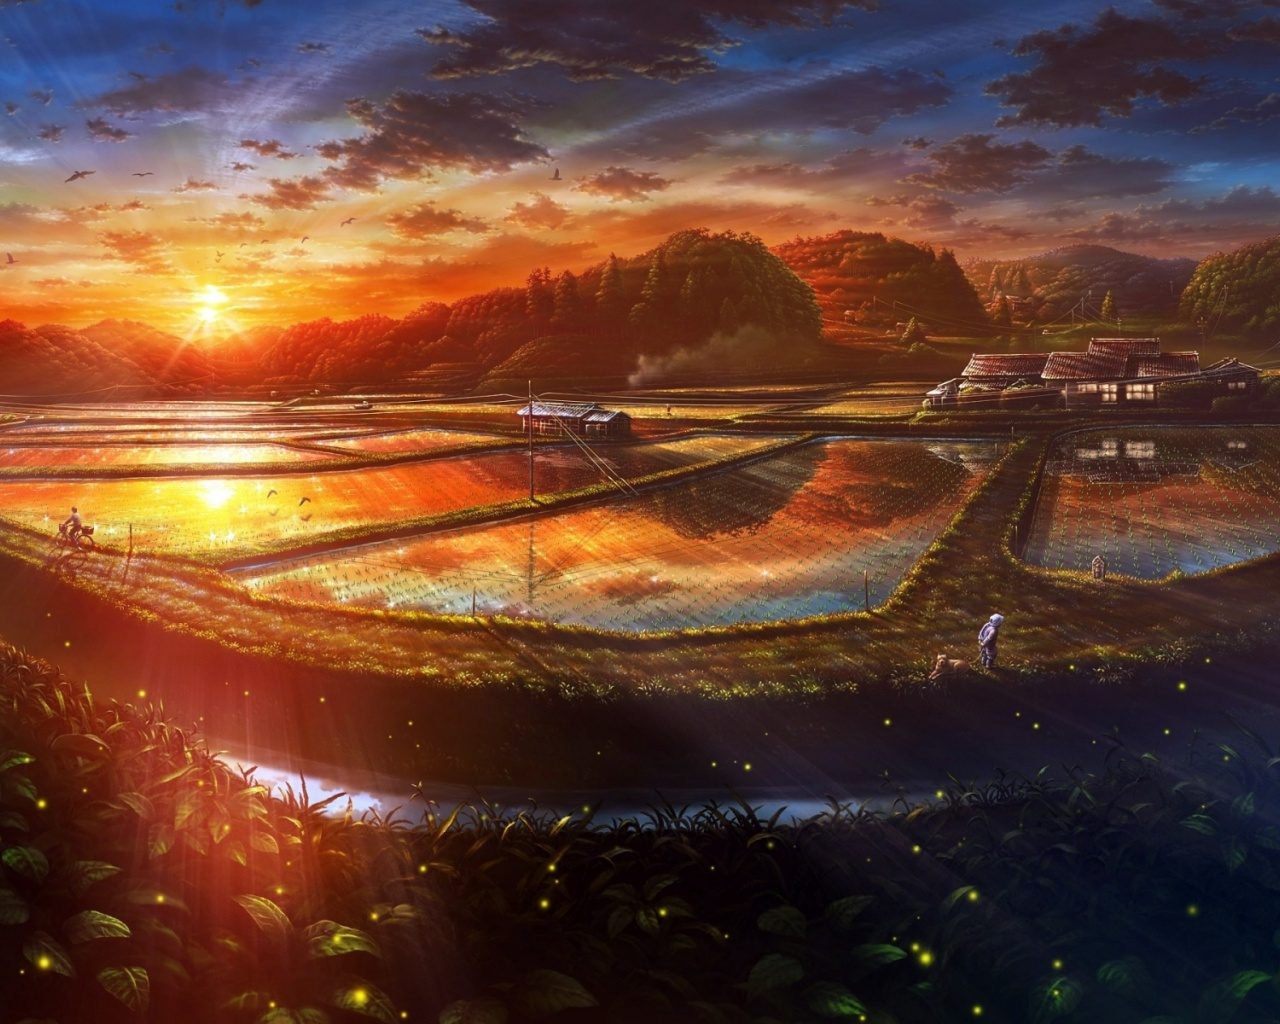 1280x1024 Sunset Anime Scenery Drawn Desktop PC And Mac Wallpaper